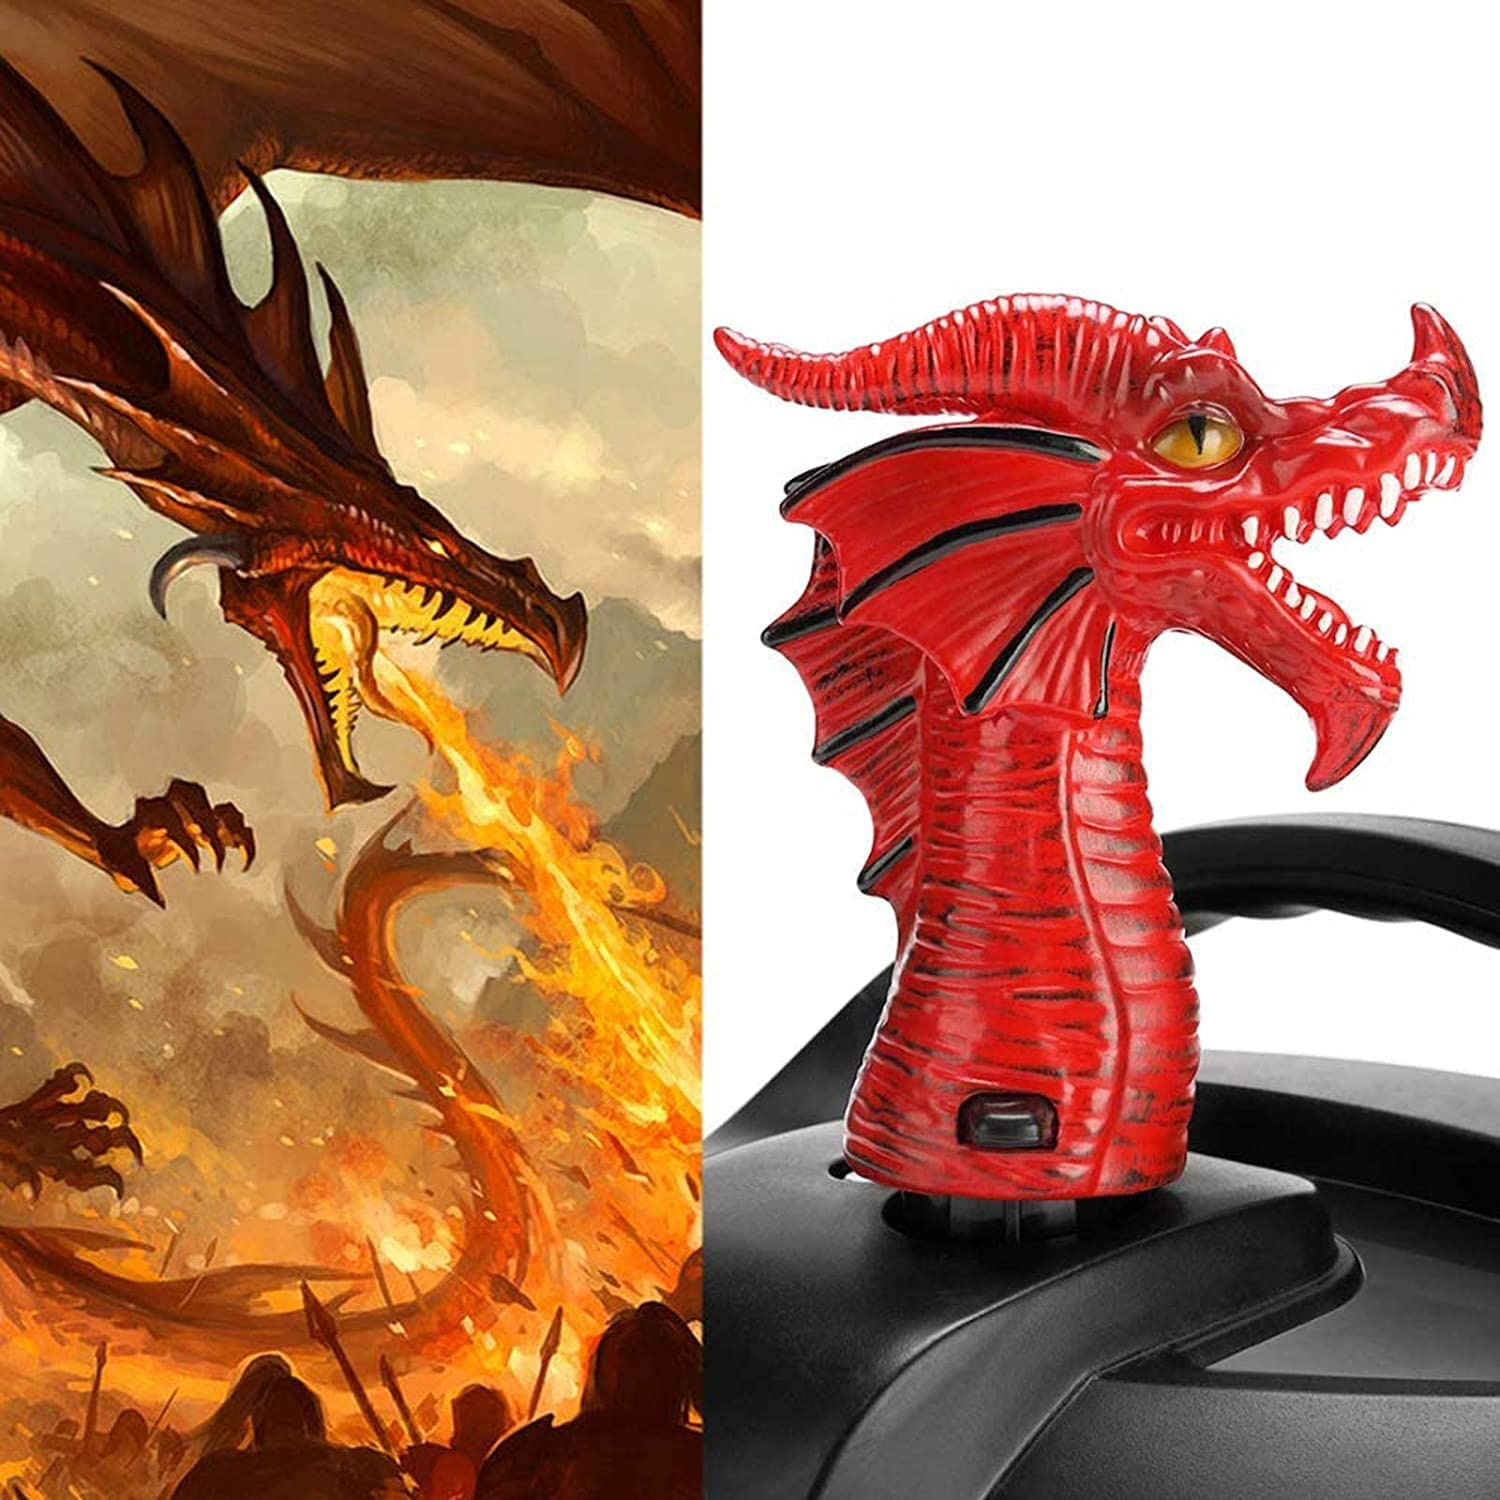 Fire-Breathing Dragon Original Steam Release Accessory Steam Diverter Tool for Instant Pot Pressure Cooker Black+Red Original Steam Release Accessory Cabinets Savior for All Size Kitchen Supplies